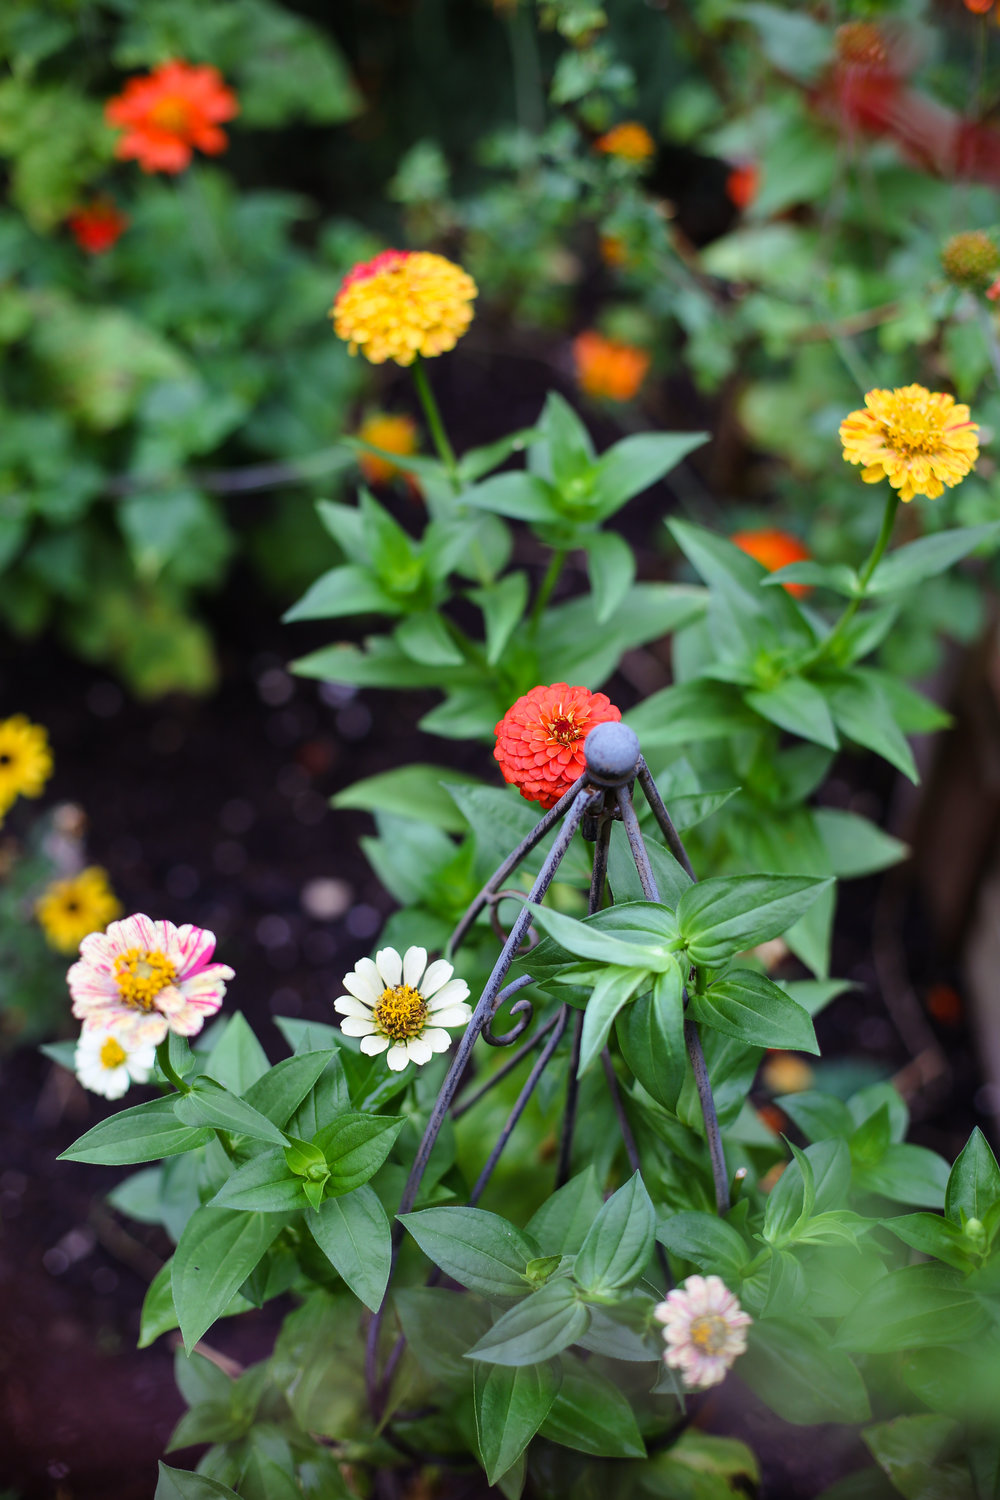 Zinnia - different varieties